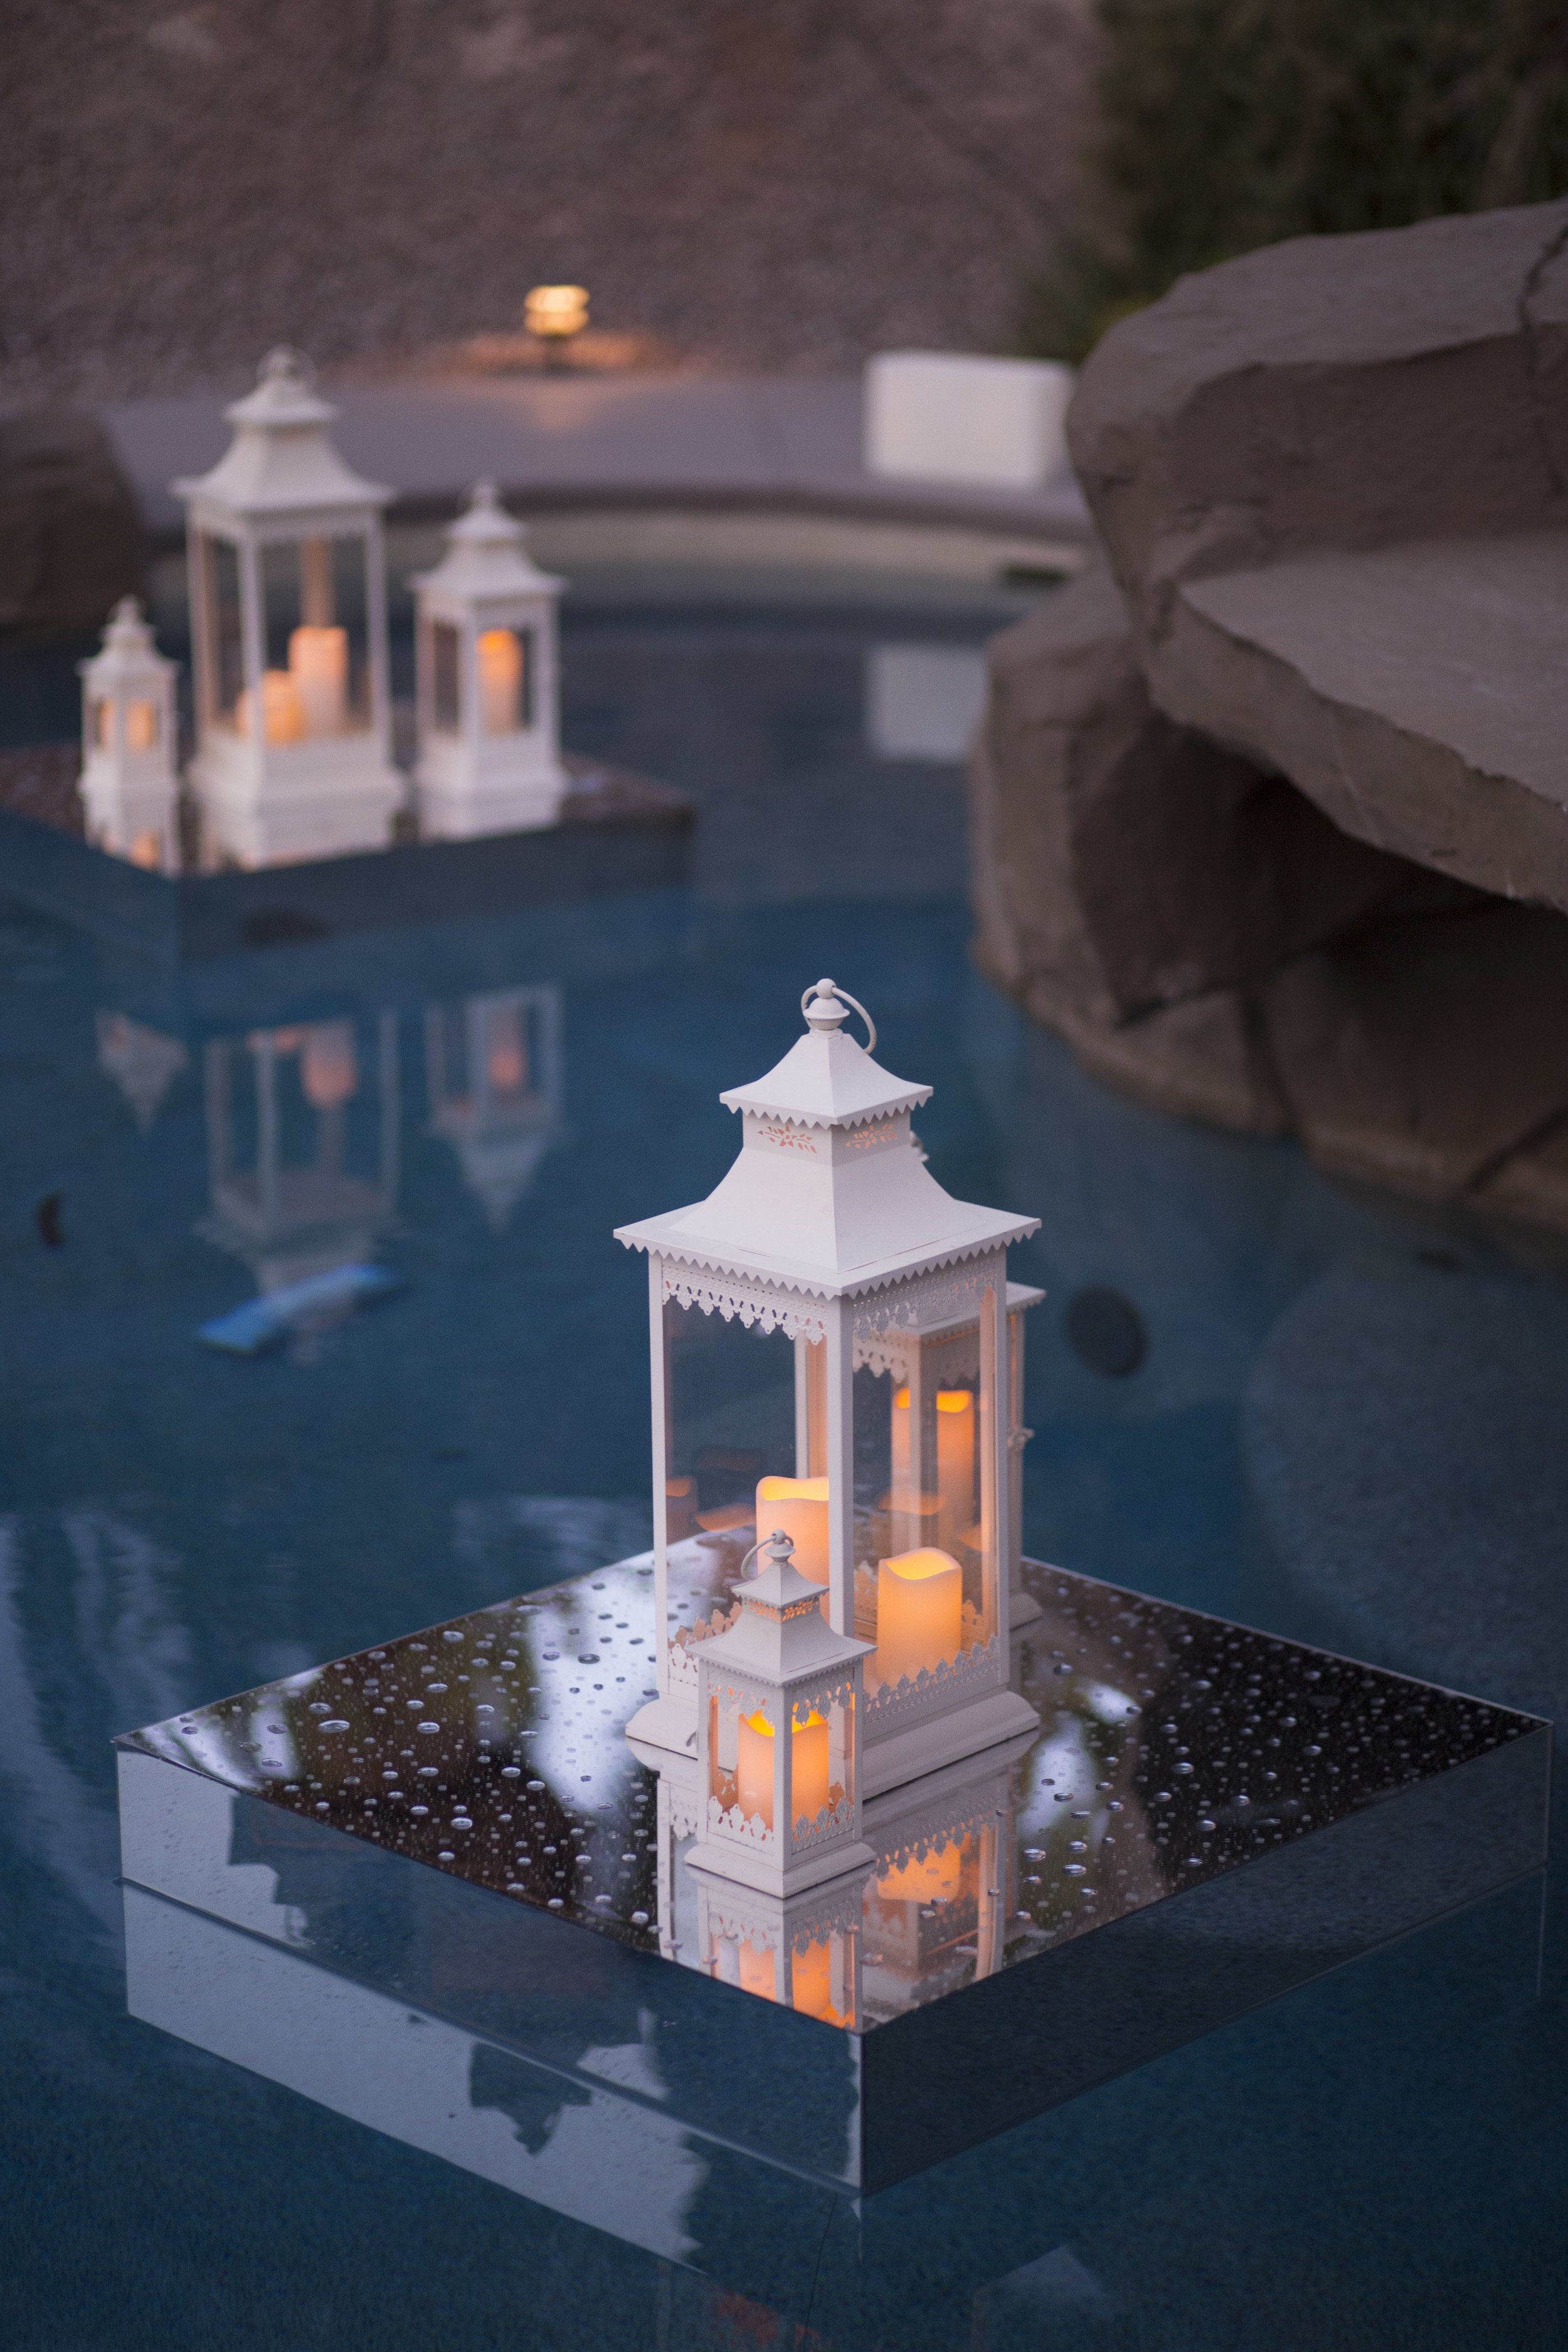 Floating Lanterns in the pool at Castle Style Luxury Estate wedding iN las Vegas. Luxury Las Vegas Wedding Planner Andrea Eppolito. Image by AltF Photography.